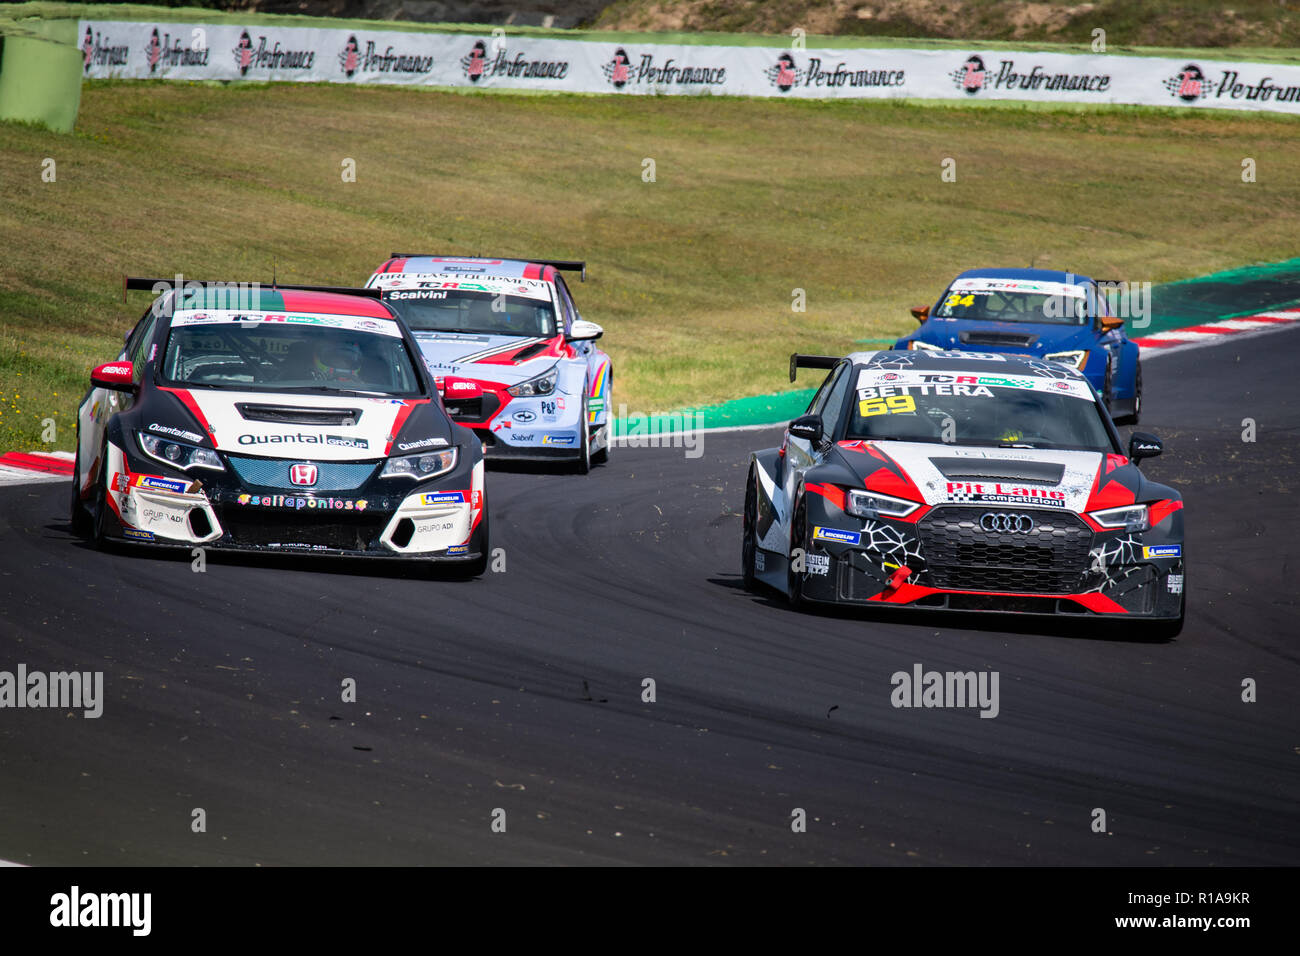 Vallelunga, Rome, Italy september 16 2018, Aci racing weekend. Front view full length of Audi RS3 and Honda Civic touring cars in action at turn durin - Stock Image